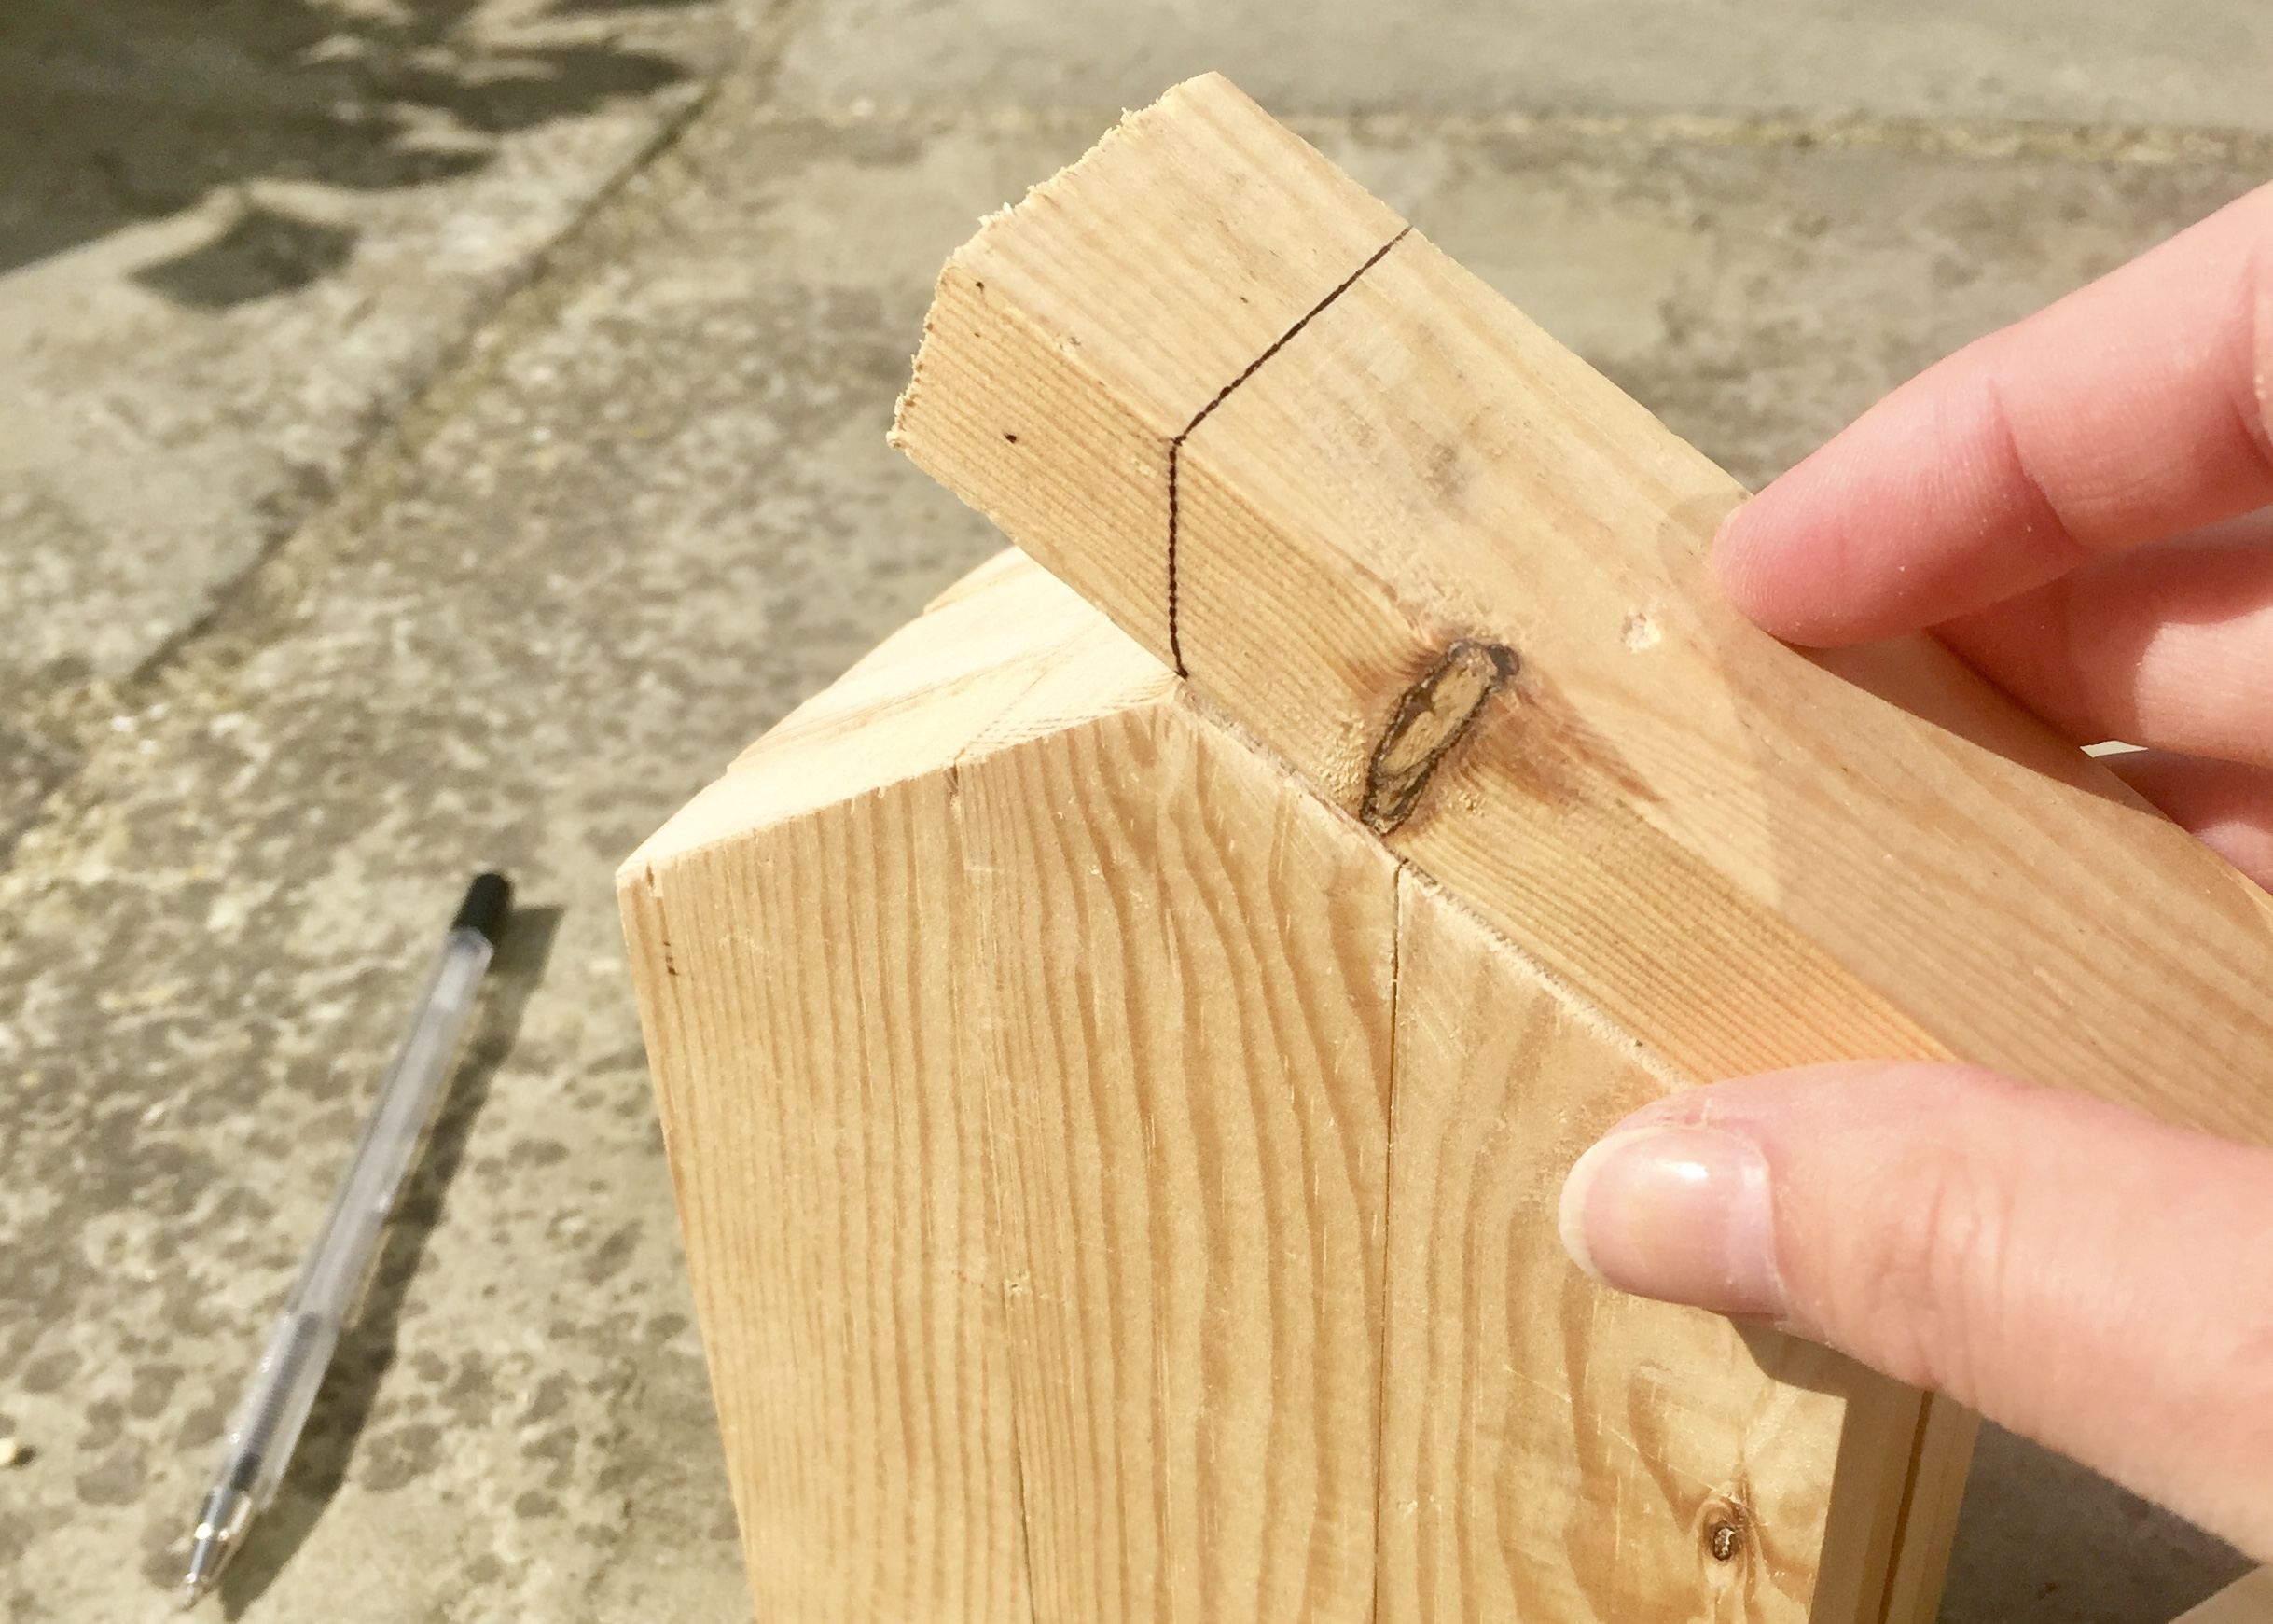 5. - With the remaining 4 lengths of wood, I used these to create a roof for my bee hotel by positioning them on the house and marking where I would need to cut. I wanted the roof to overhang a little bit and so on the outer edge I cut approximately 1.5cm more than I needed.